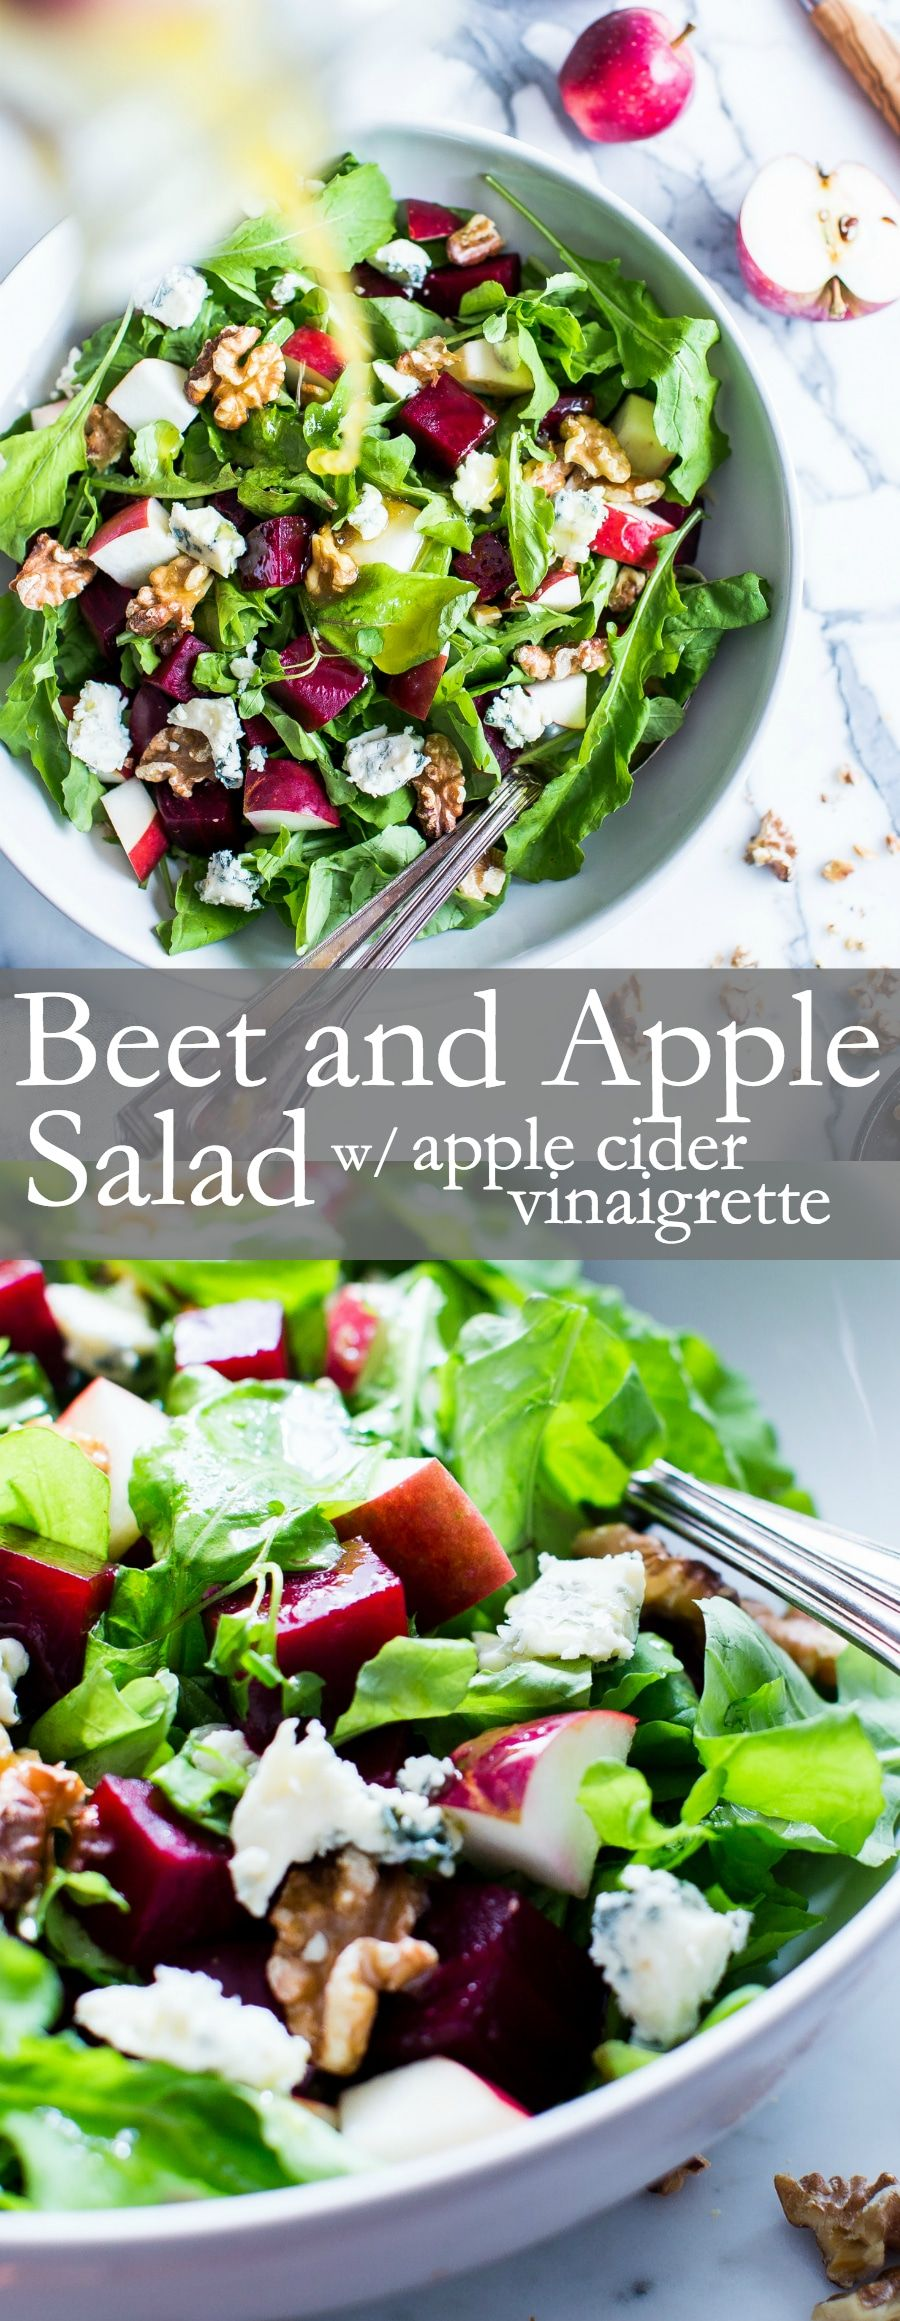 Nourishing fall flavors come together in this simple yet flavor packed salad. With a snappy dressing, Beet and Apple Salad with Apple Cider Vinaigrette is versatile enough to pull together with your favorite greens. | #VegetarianSalad #Vegan Option #GlutenFree #soupandsalad